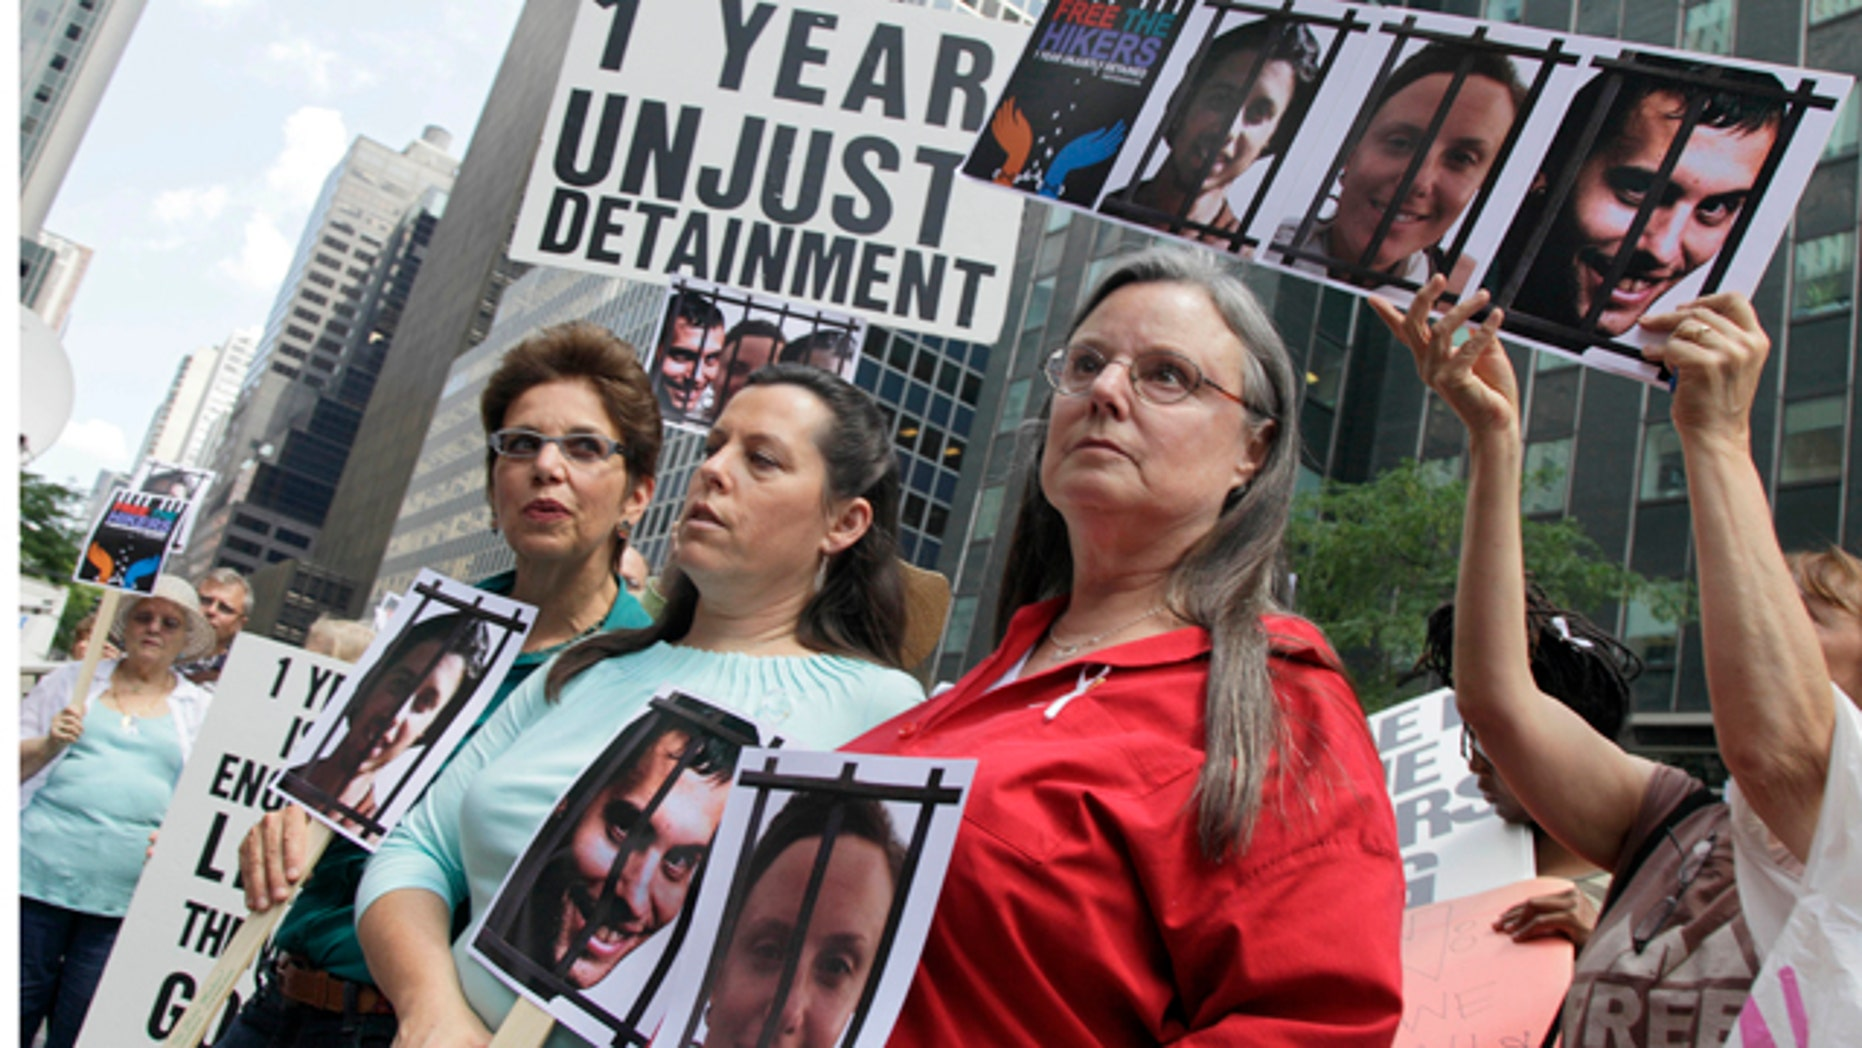 Laura Fattal, left, Cindy Hickey, center, and Nora Shourd, mothers of three American hikers jailed in Iran, participate in a demonstration outside Iran's mission to the United Nations, in New York,  Friday, July 30, 2010. Saturday marks a year since the hikers were arrested along the Iraqi border. (AP Photo/Richard Drew)